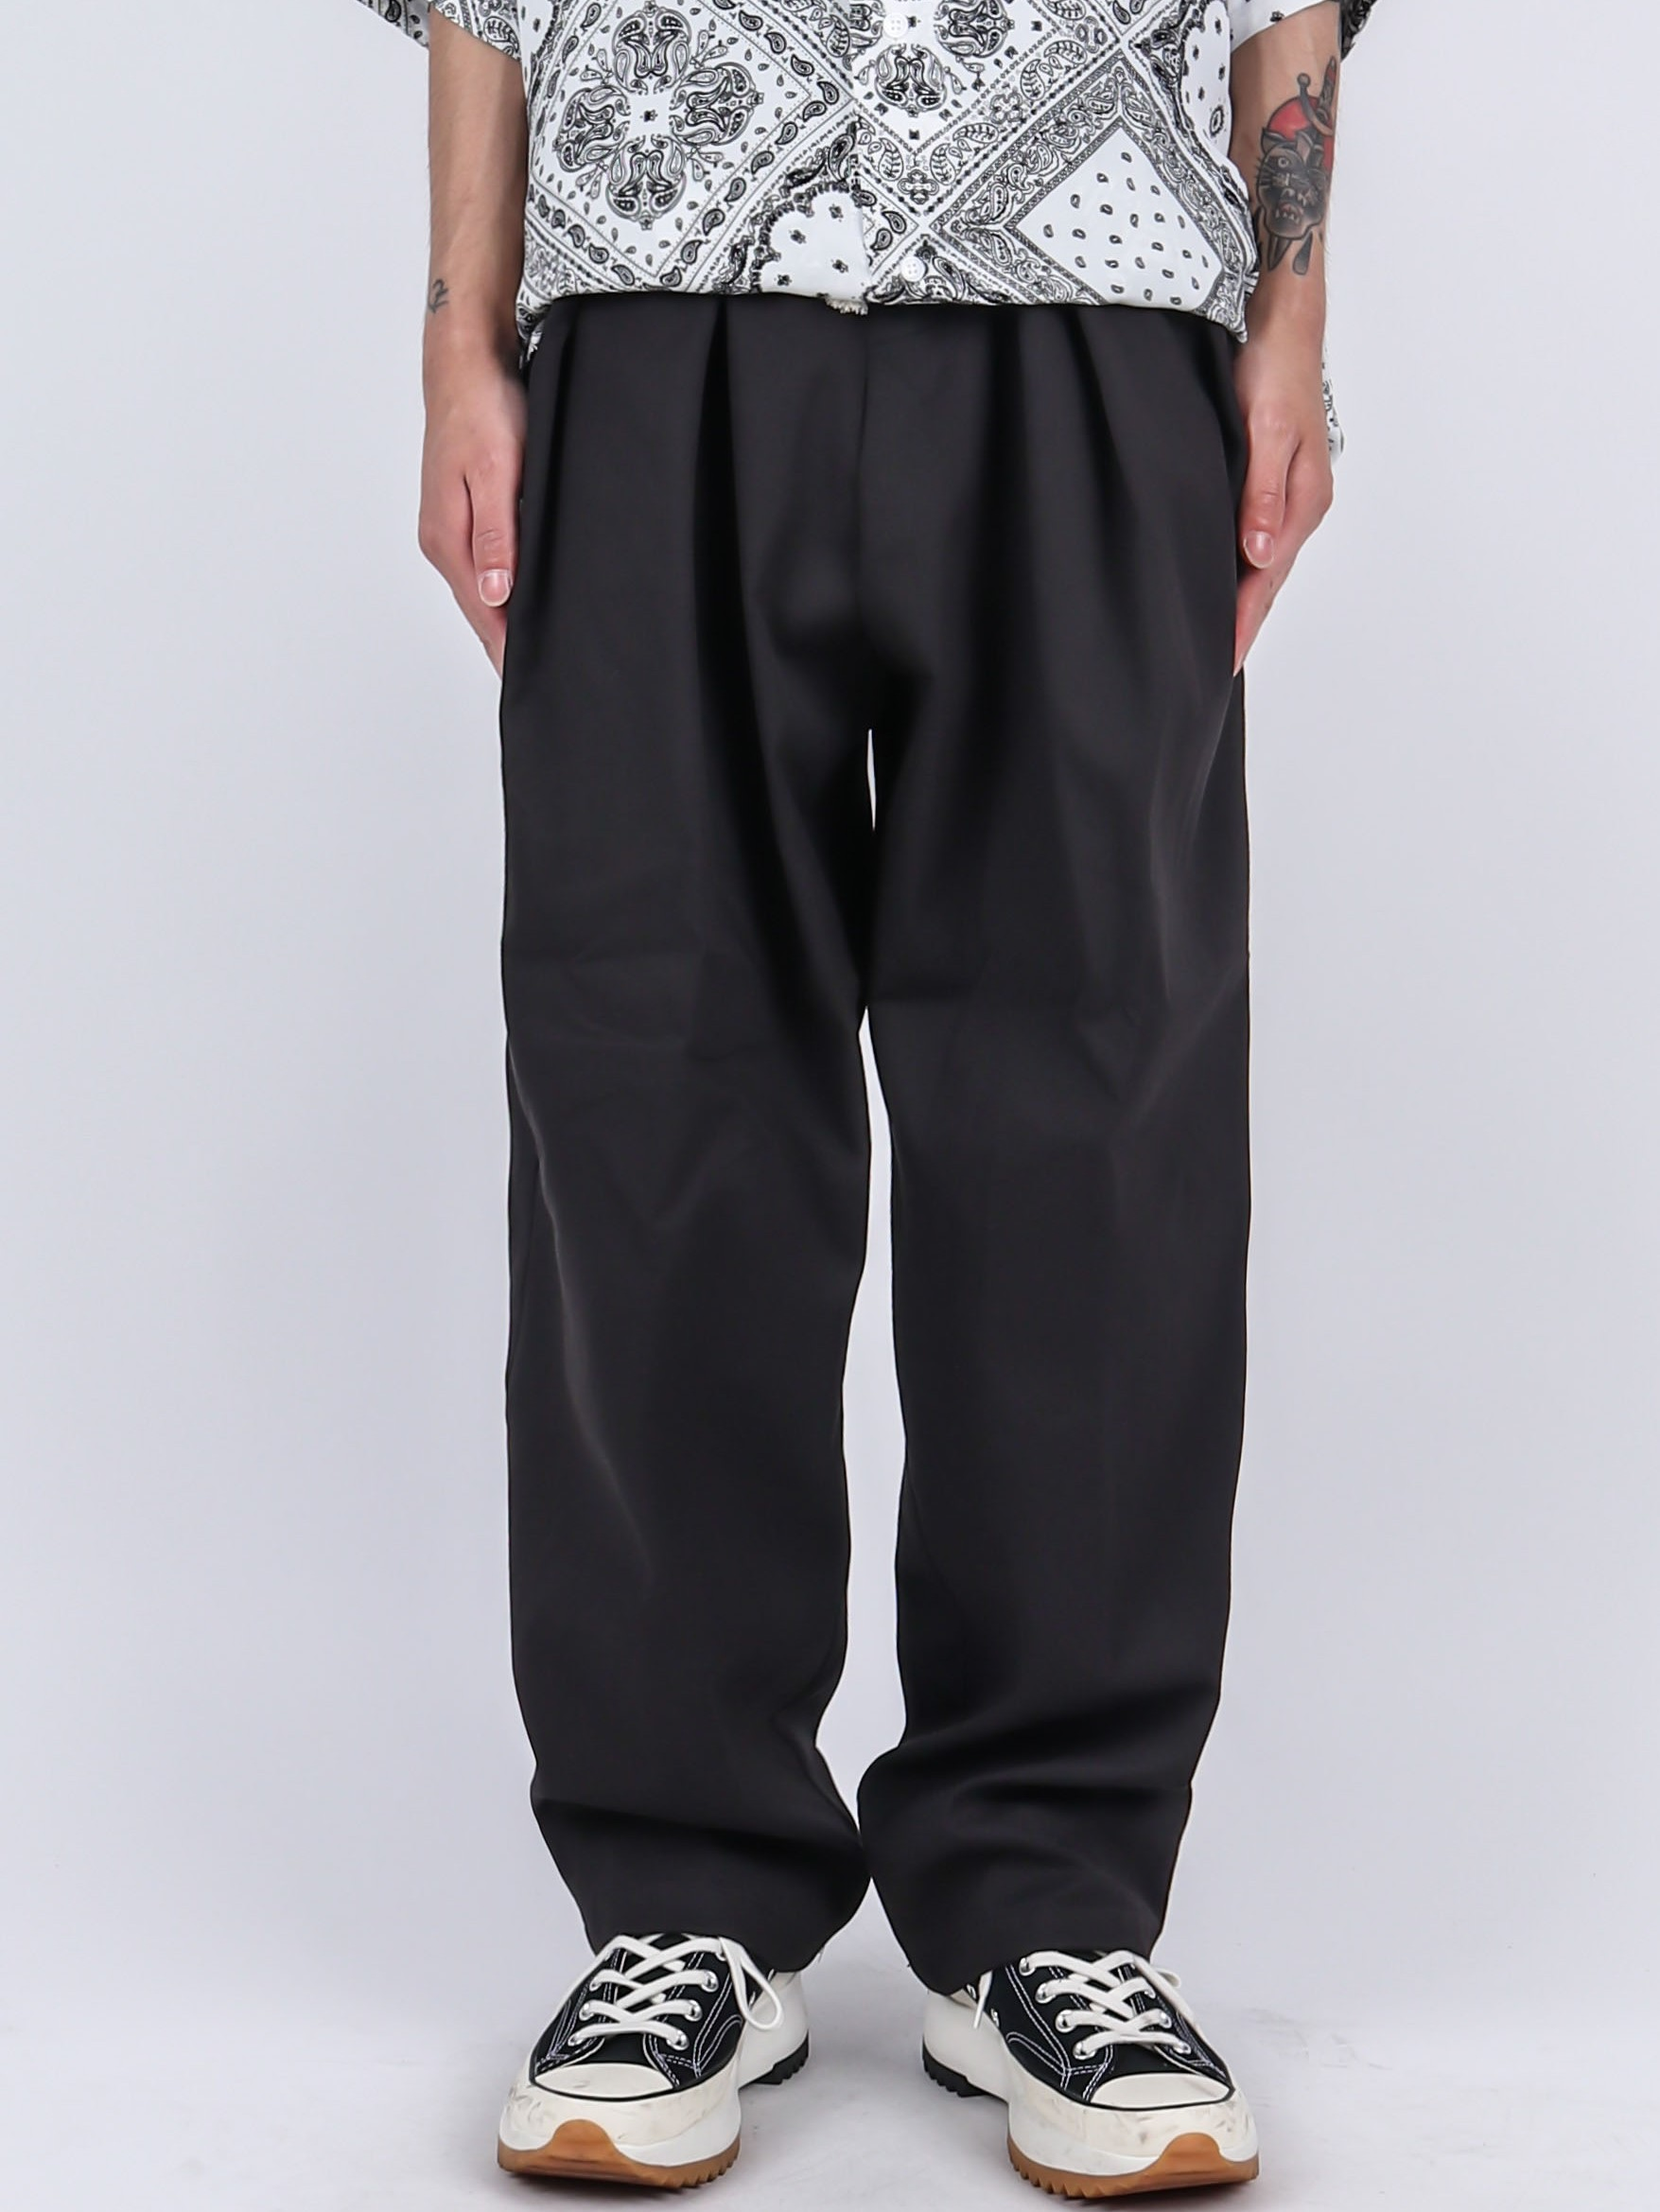 UN Over Wide Pants (2color)